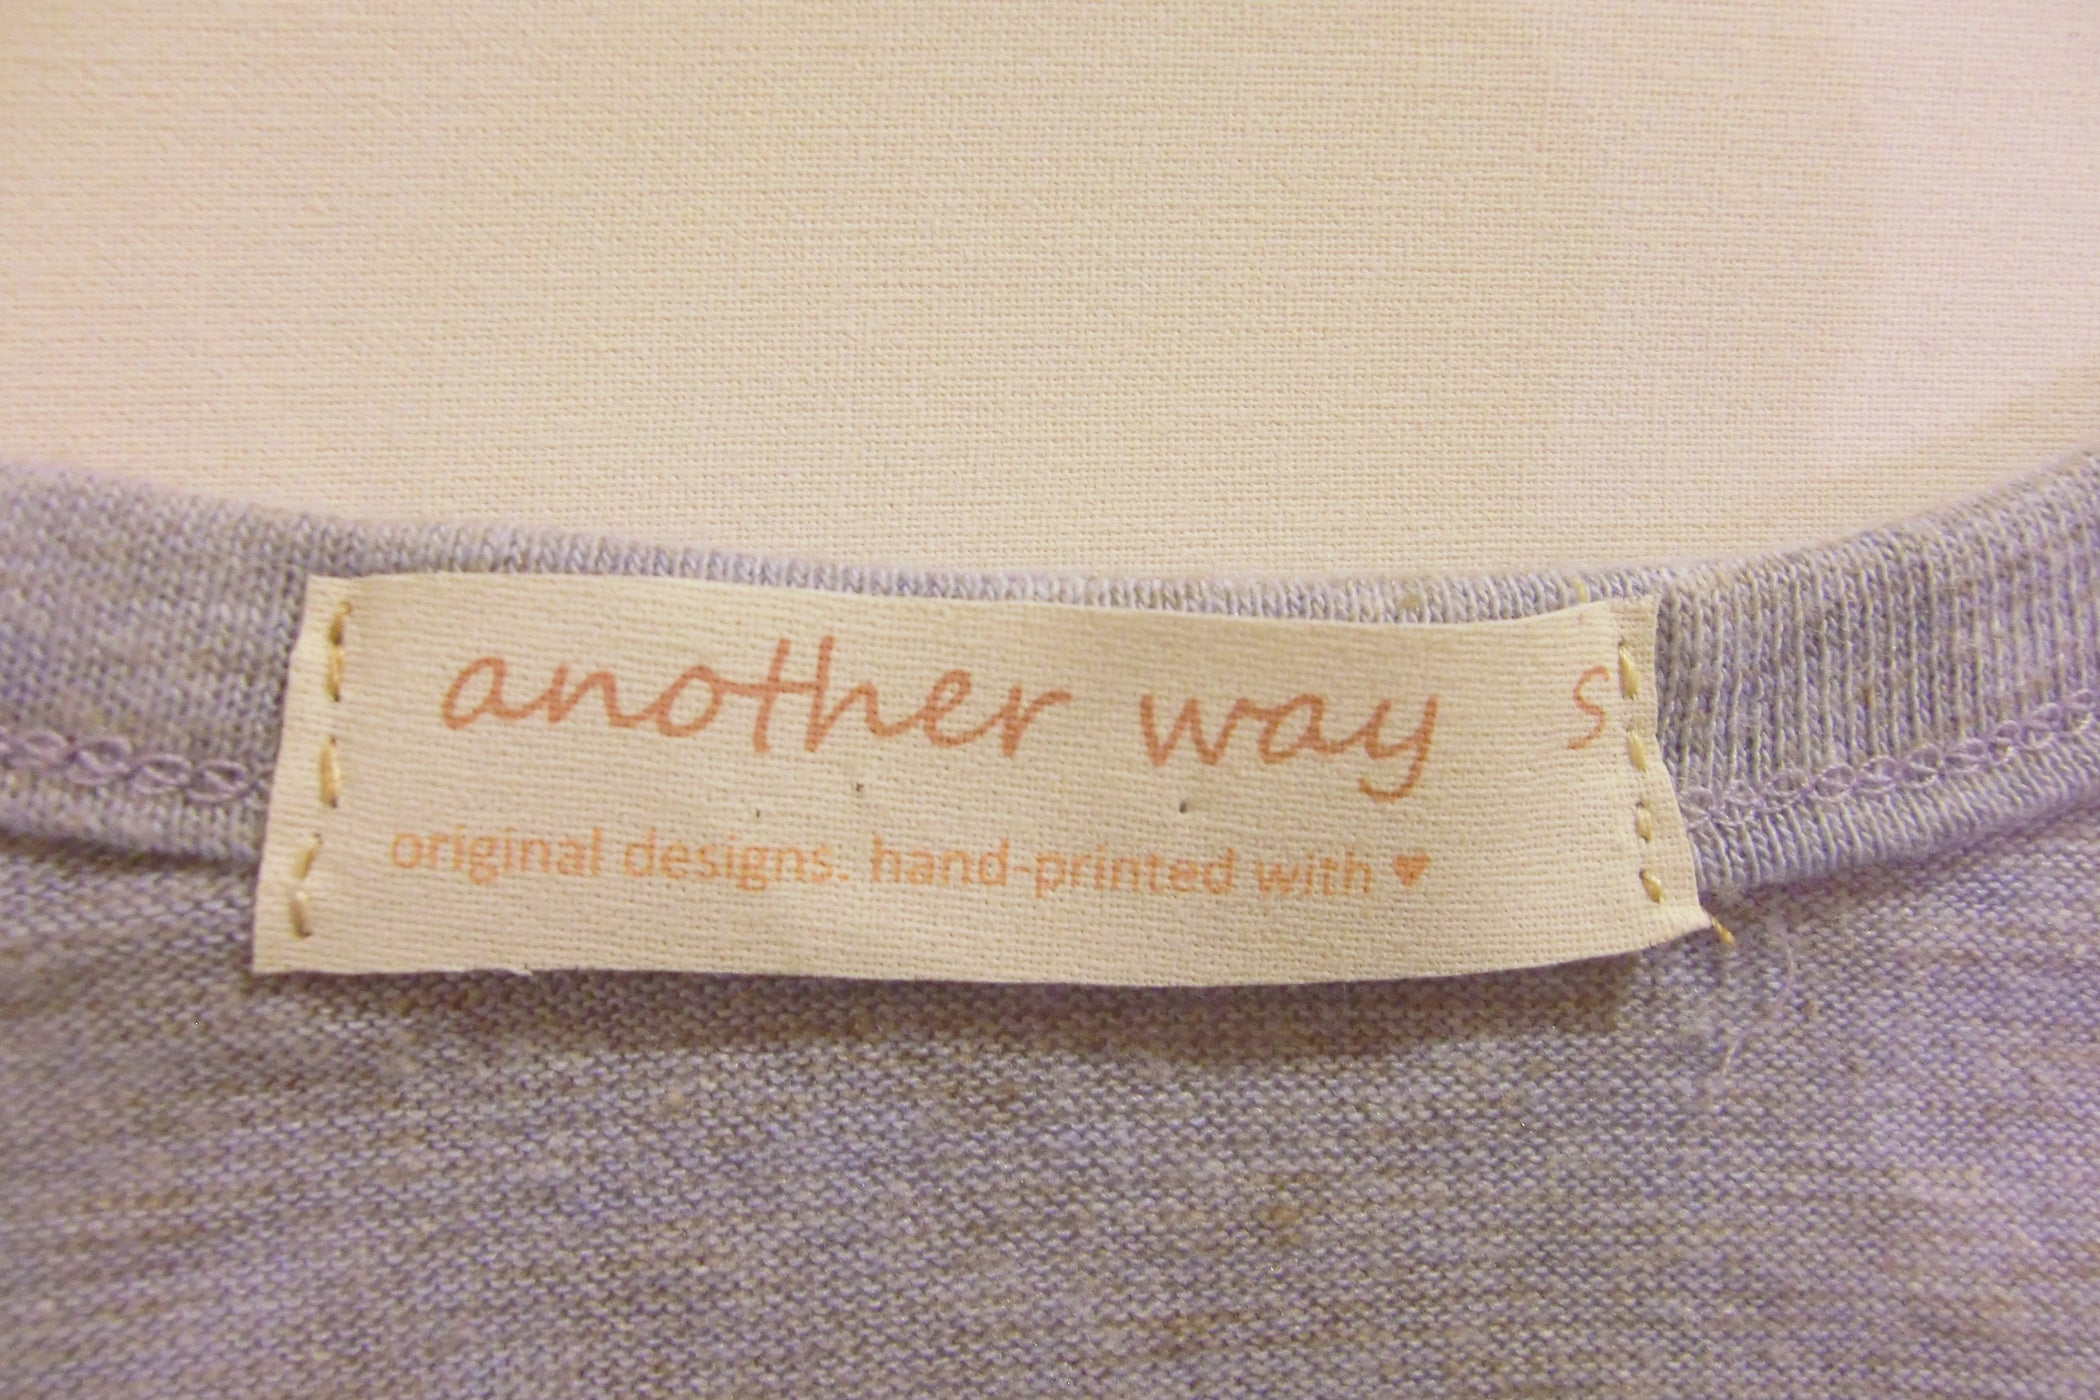 DIY: Make Your Own Clothing Labels : 5 Steps - Instructables